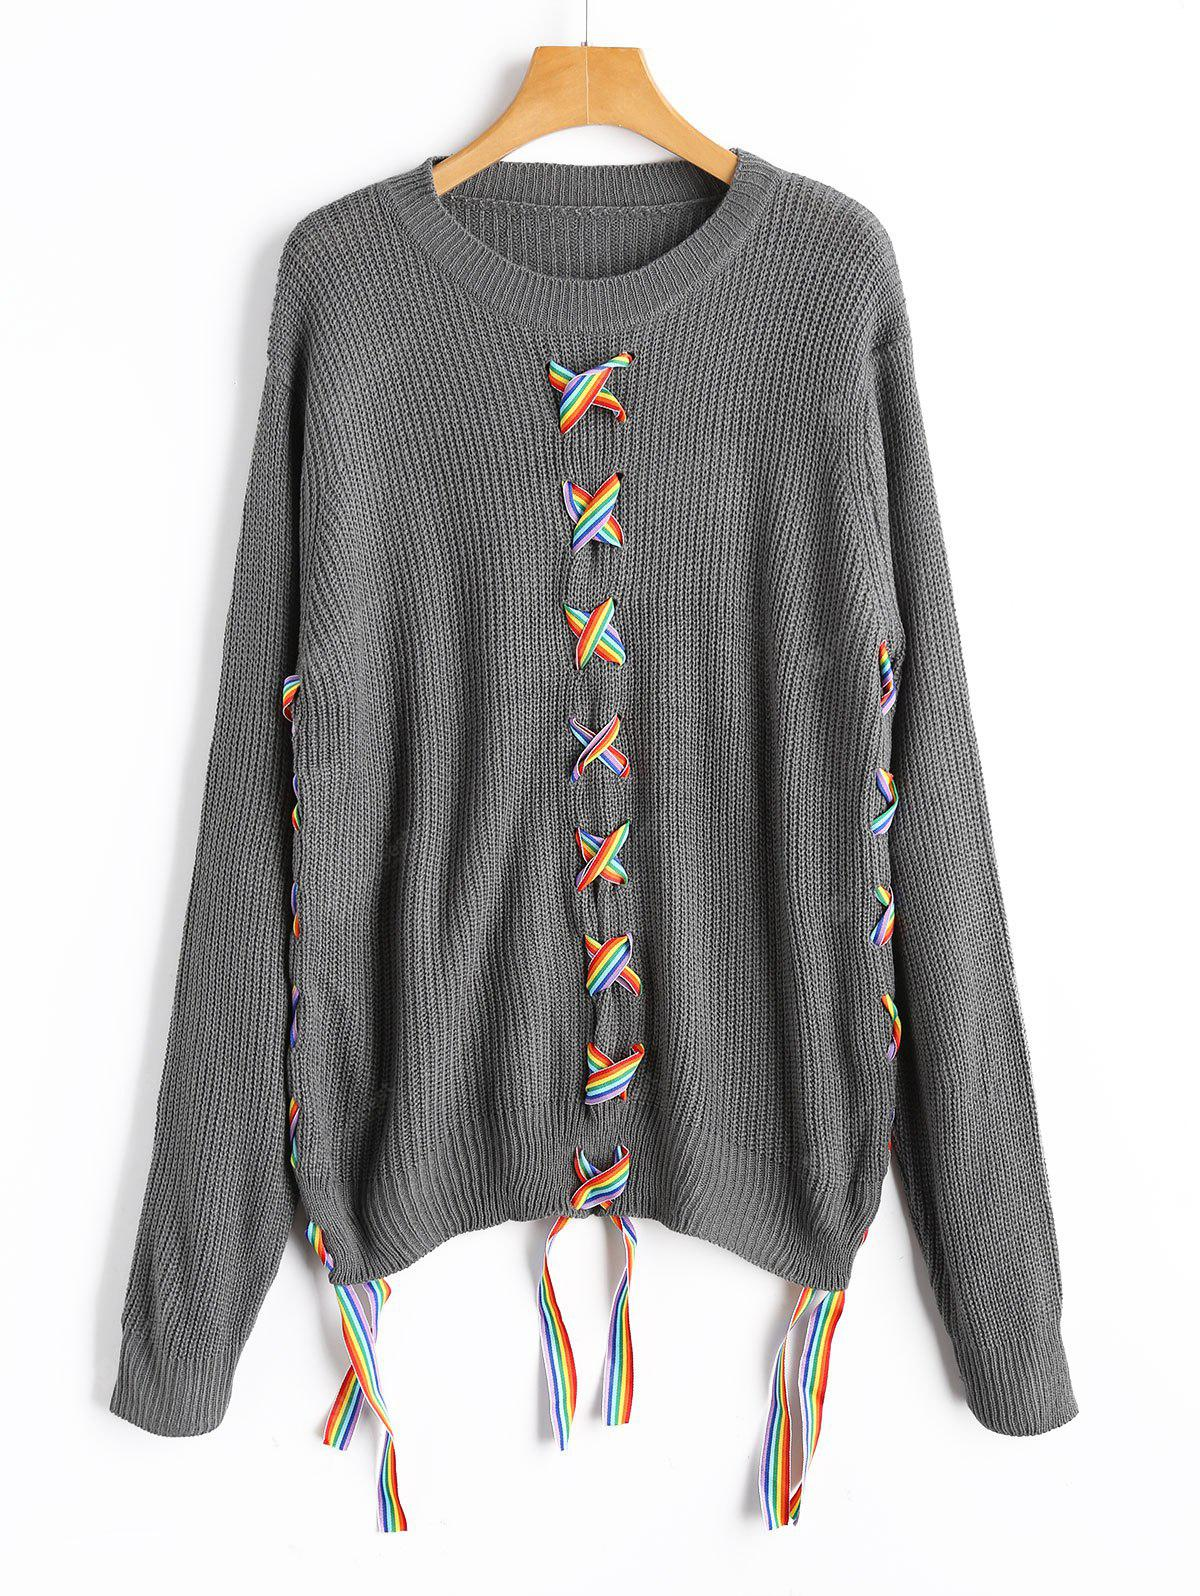 GRAY Colorful Lace Up Sweater